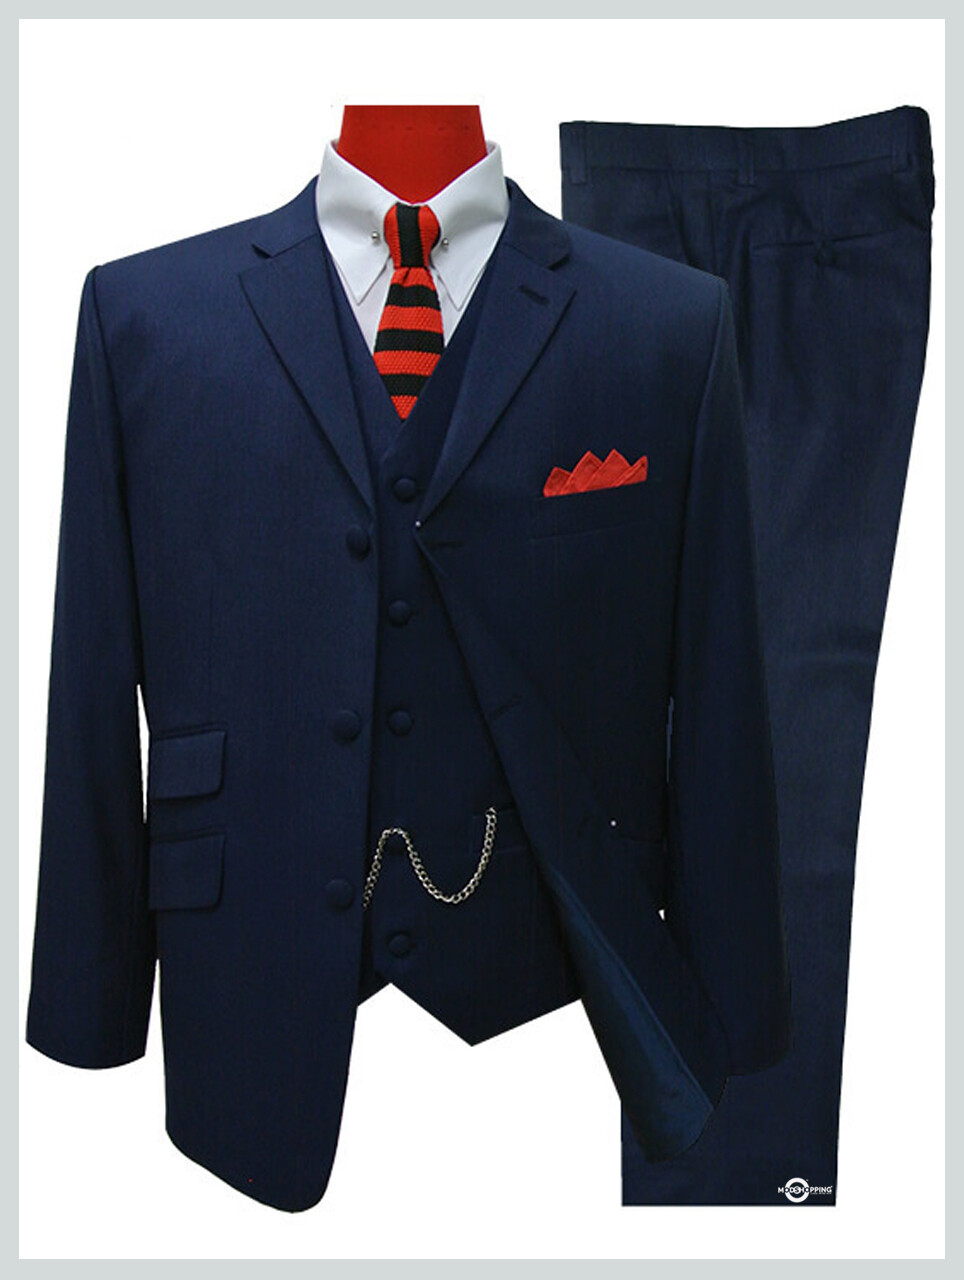 Essential Navy Blue 3 Piece Suit|60s Mod Suit 3 Button Tailored Suit